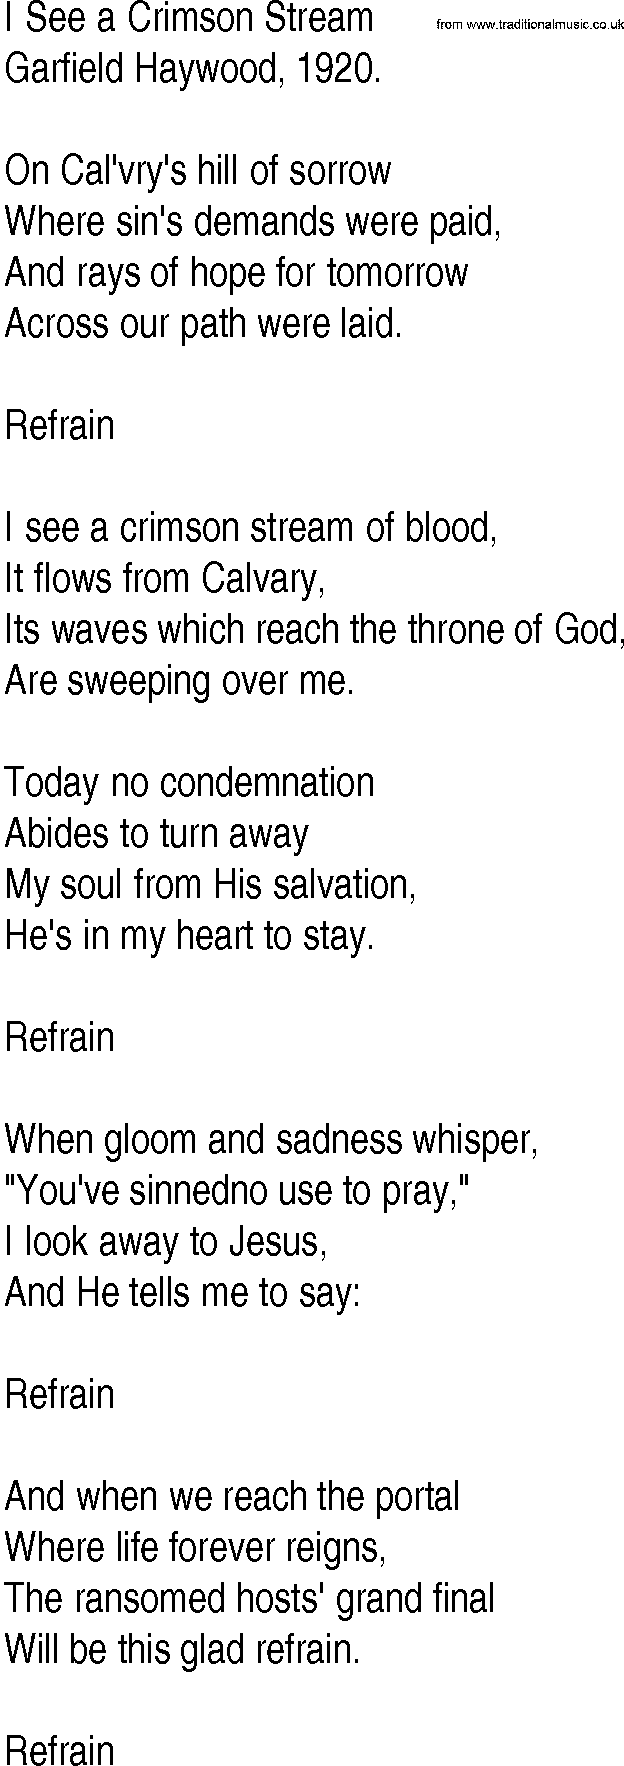 Hymn and gospel song lyrics for i see a crimson stream by garfield hymn and gospel song i see a crimson stream by garfield haywood lyrics hexwebz Image collections